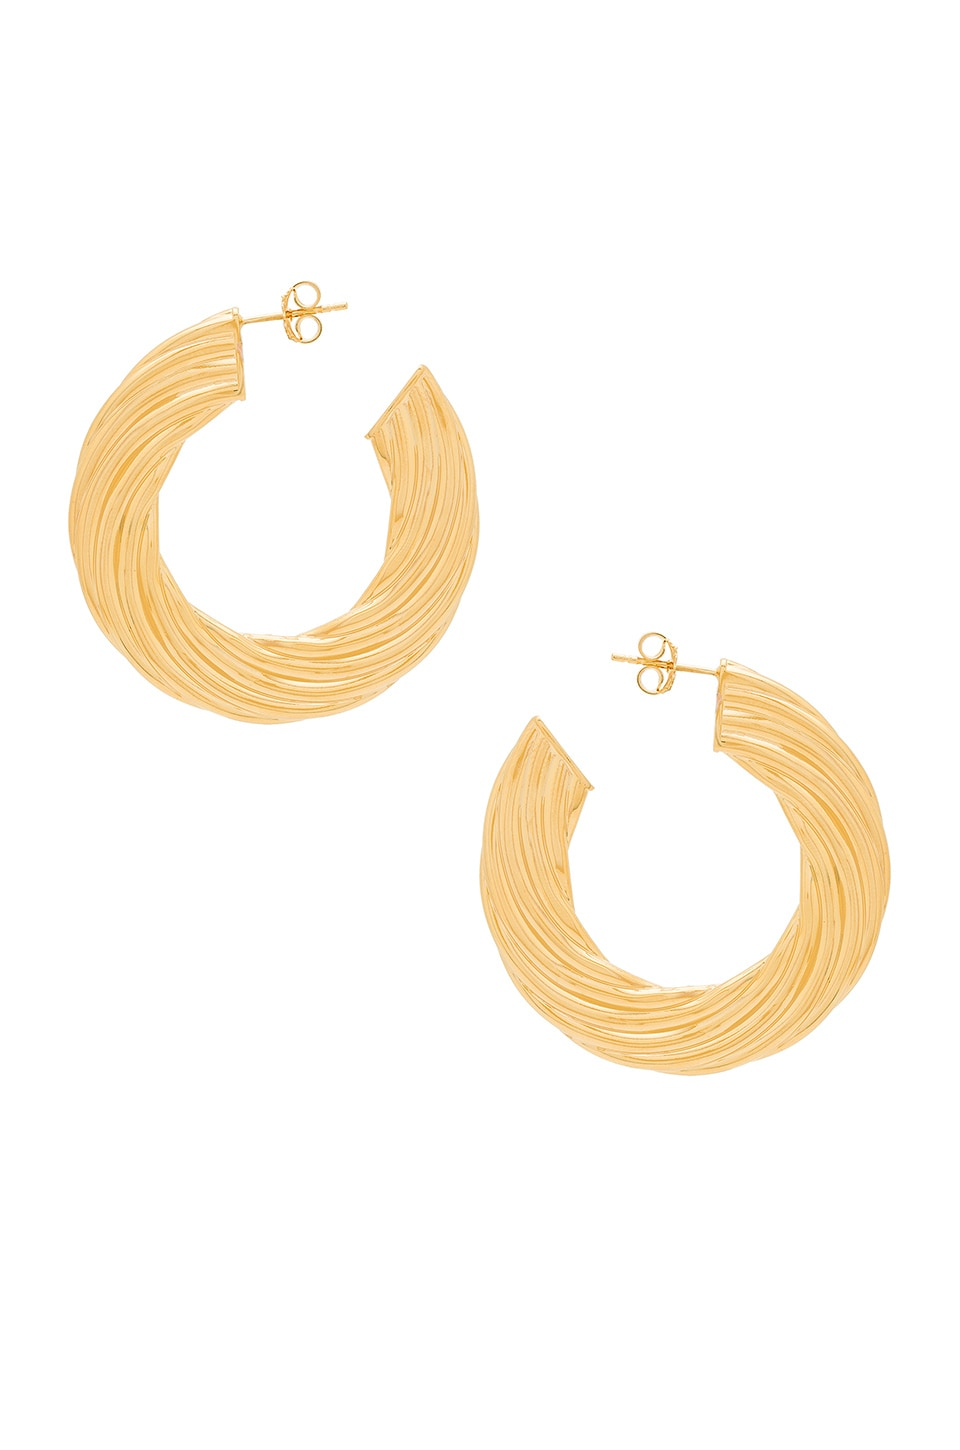 Amber Sceats Bec Earrings in Gold